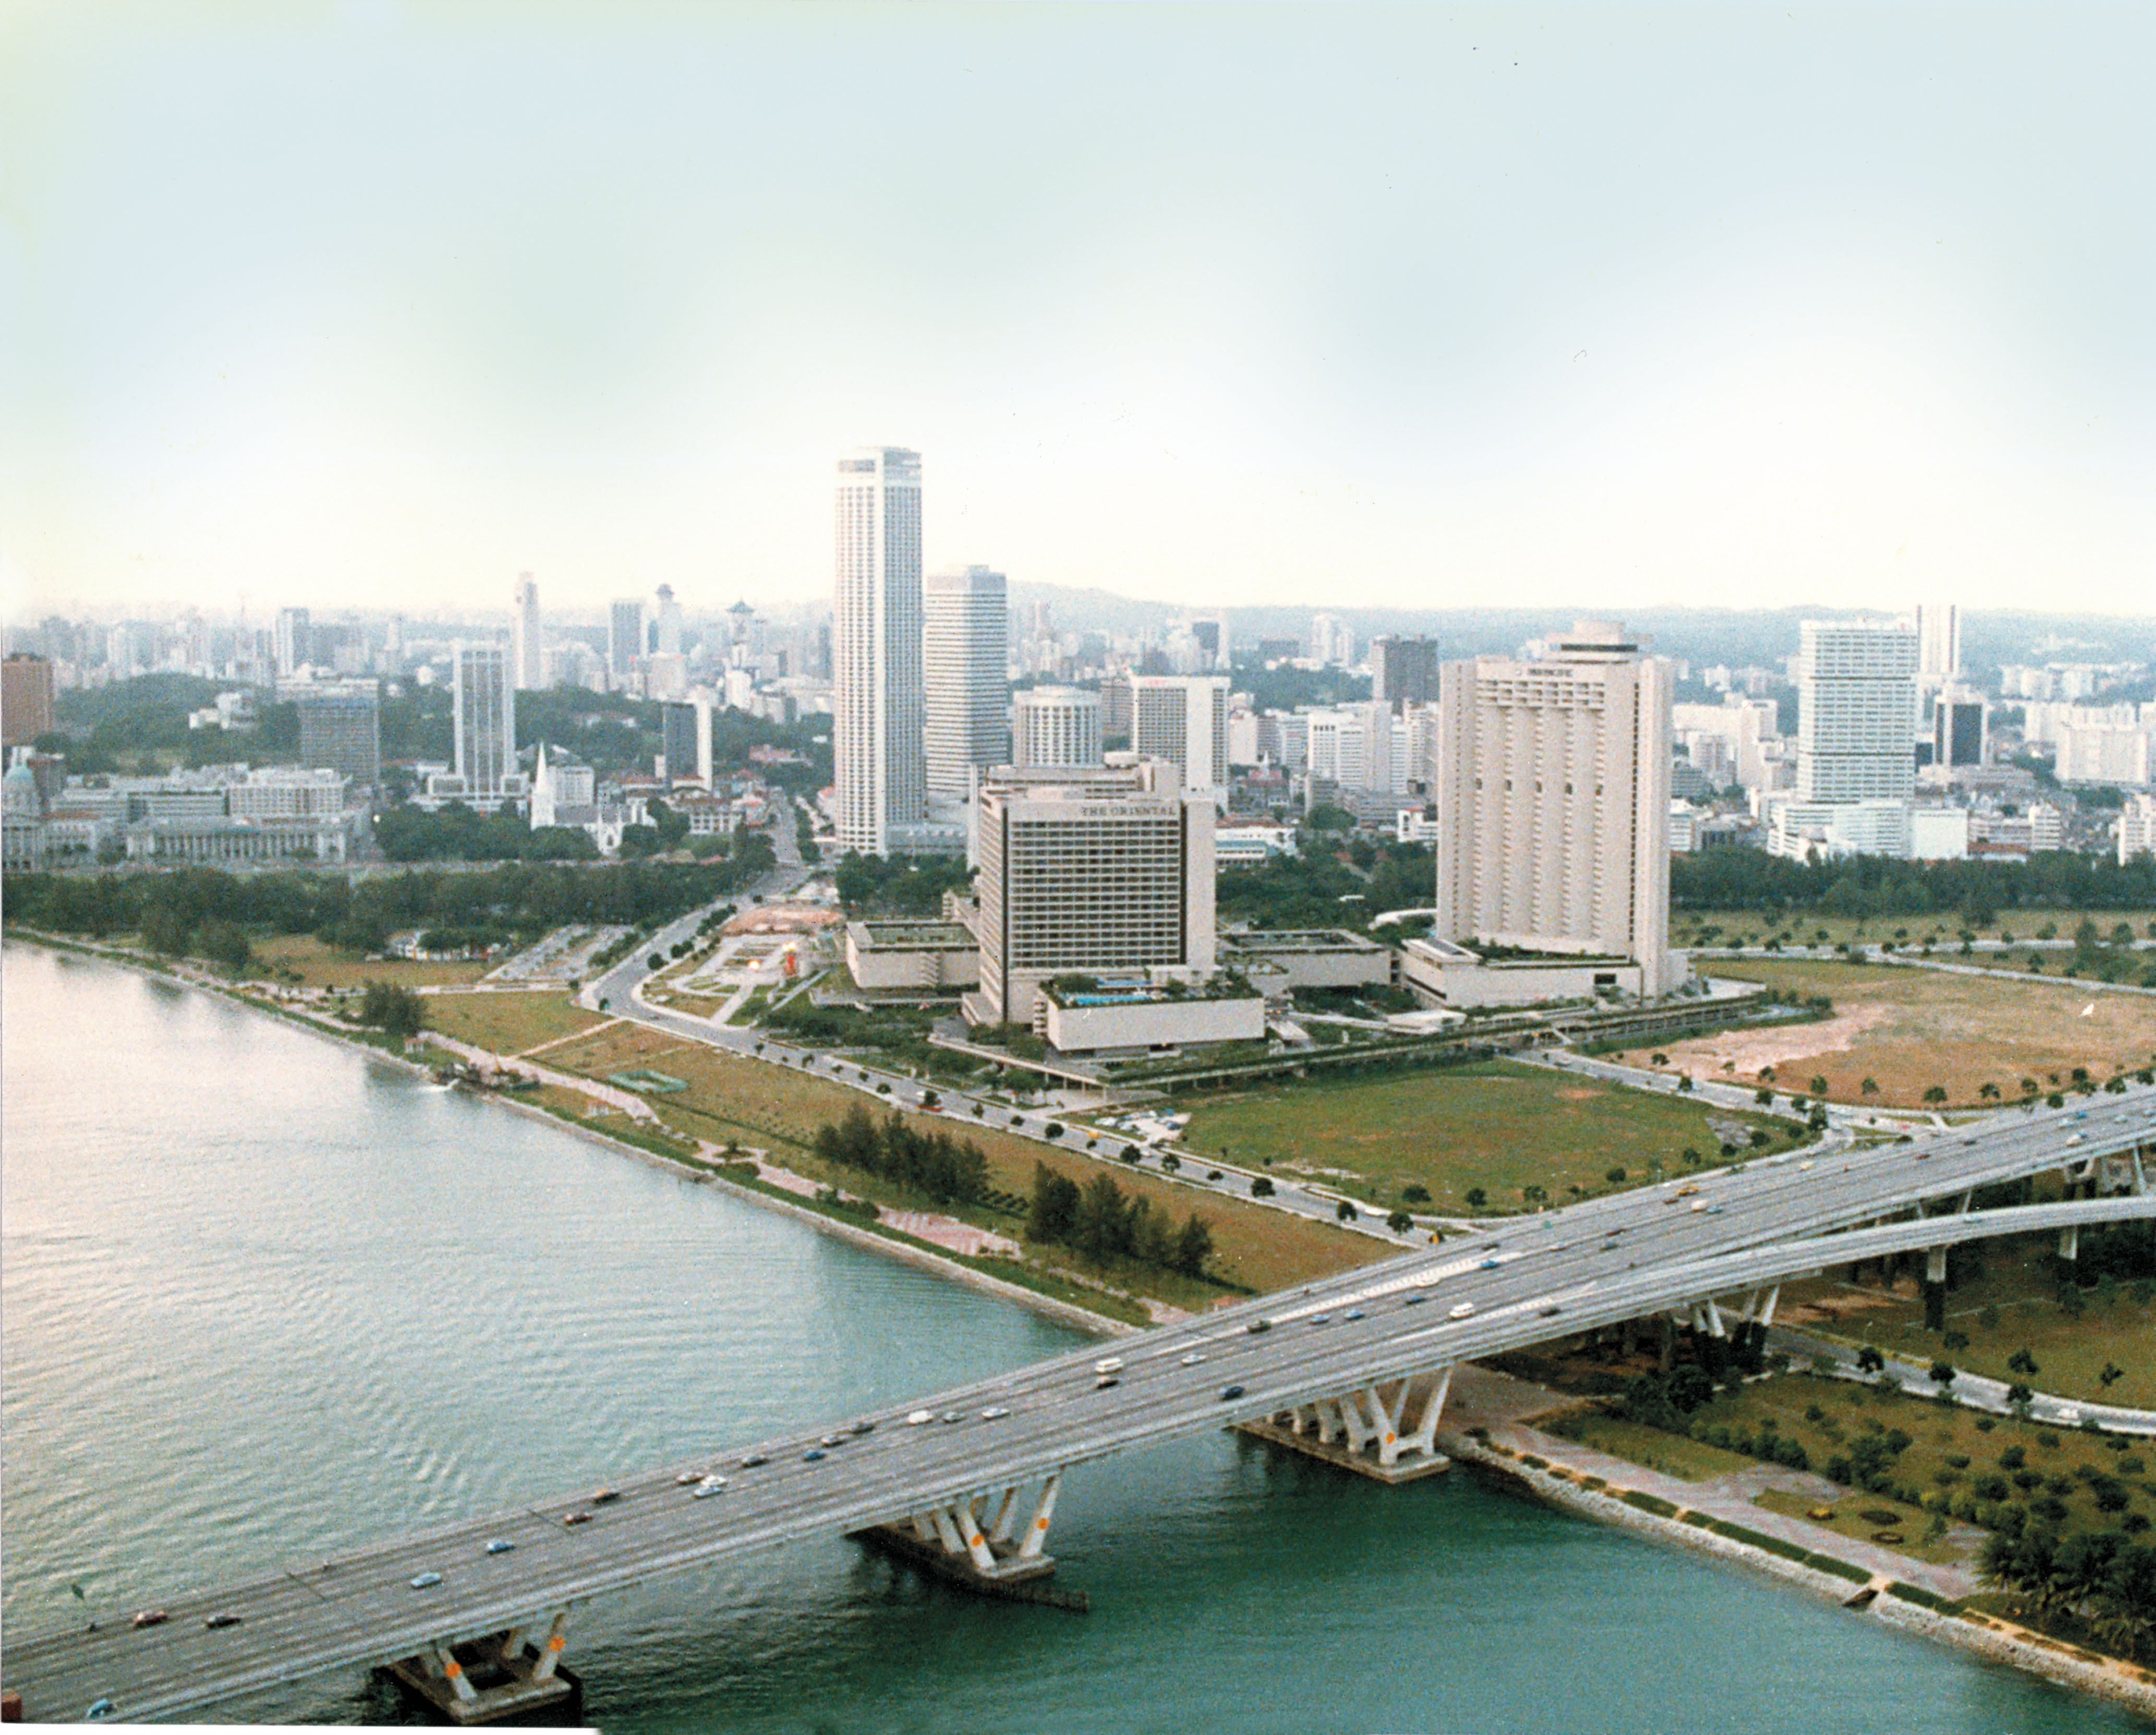 The southern Singapore coast, now known as Marina Bay, was selected for extensive land reclamation in the 1970s, to accomodate a new city centre with new amenities such as Esplanade Photo courtesy: Esplanade - Theatres on the Bay